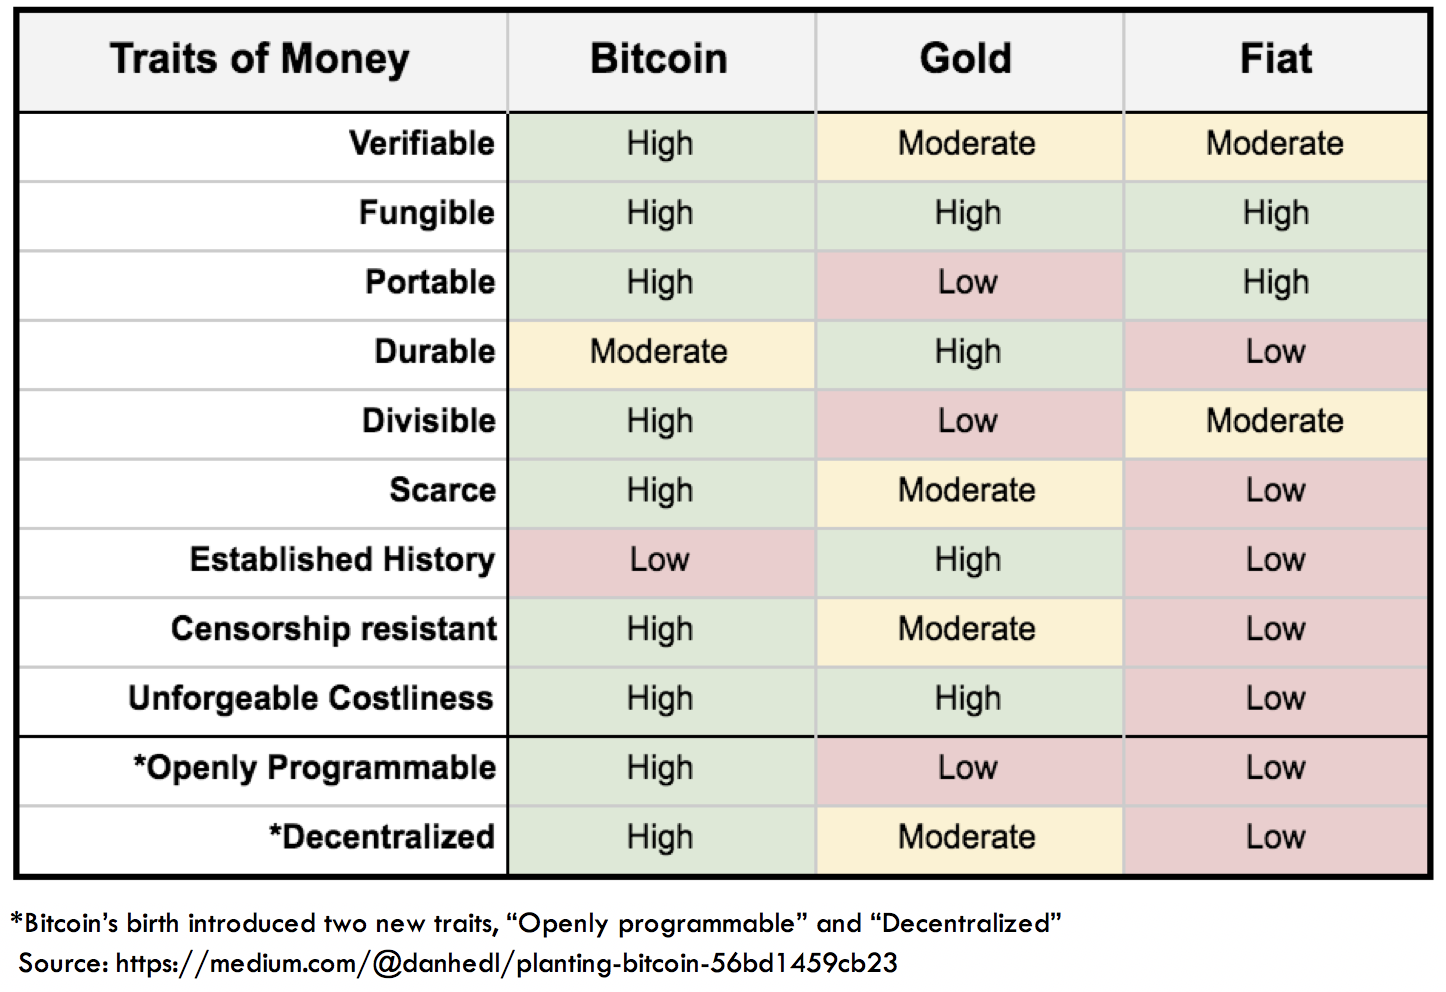 ARK Traits of Money and Cryptocurrencies